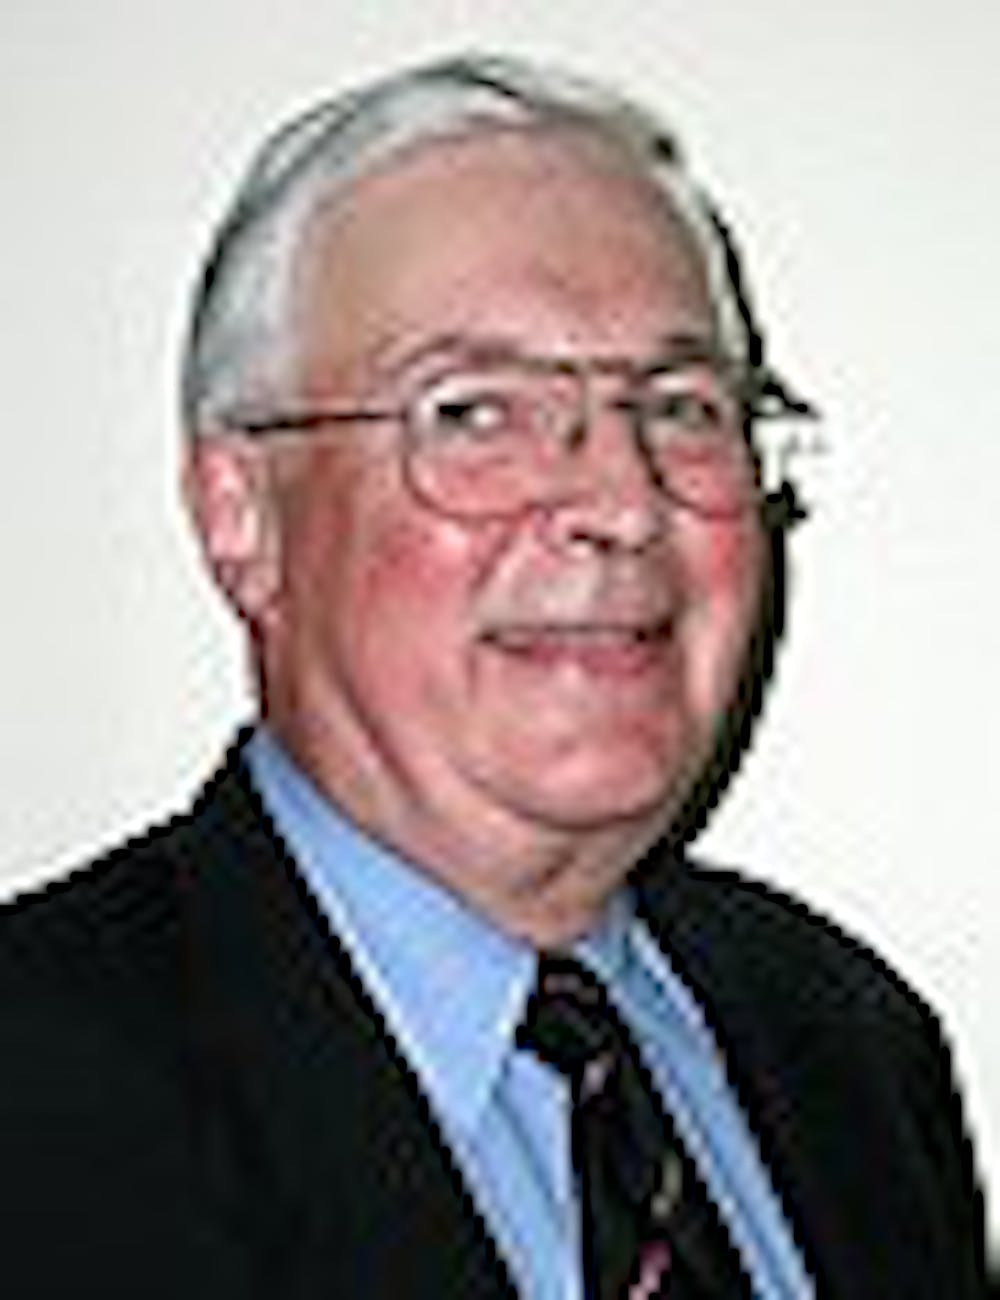 Kleinschmidt sees write-in competitor